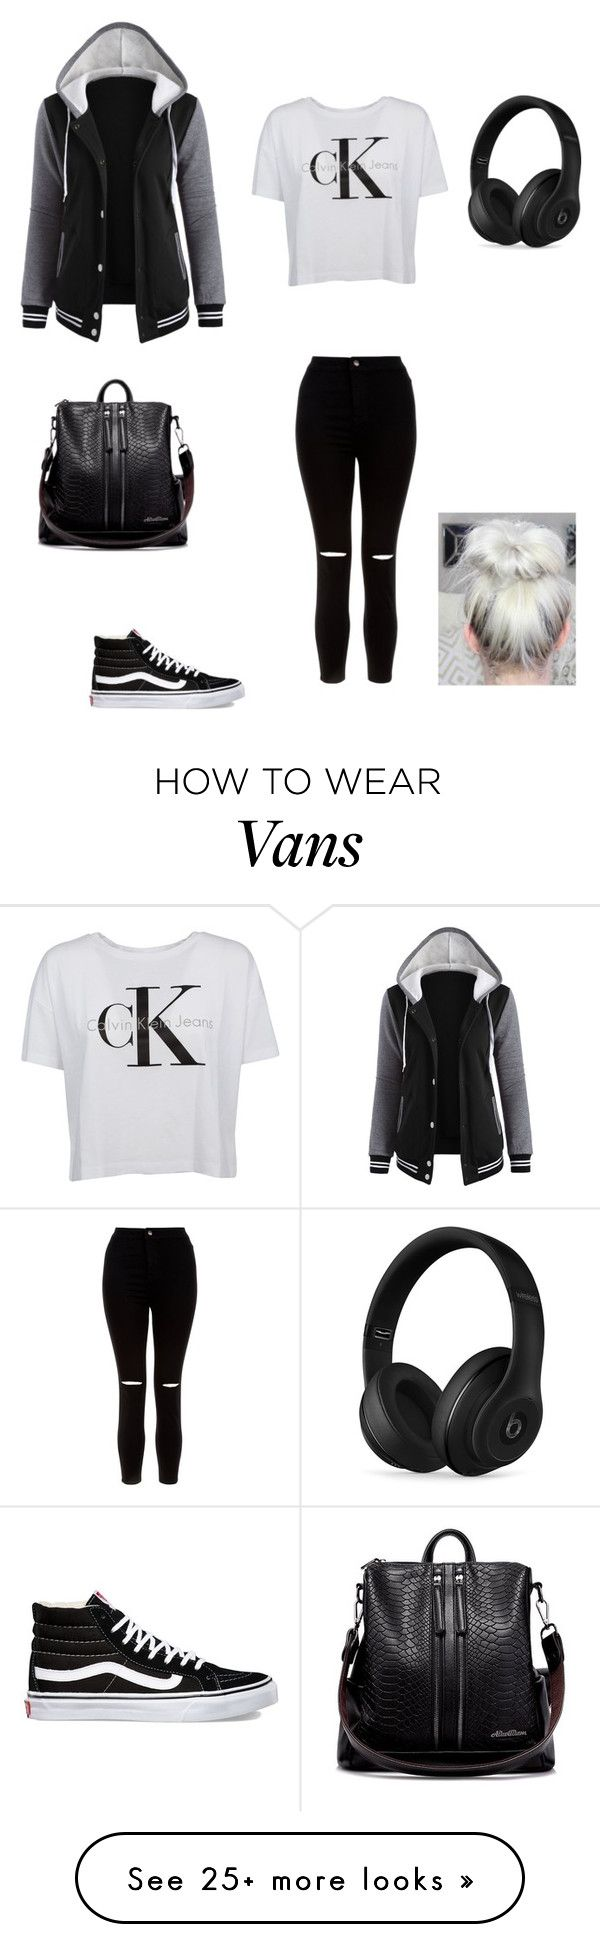 """Untitled #20"" by myamarie8 on Polyvore featuring Vans, New Look and Beats by Dr. Dre"